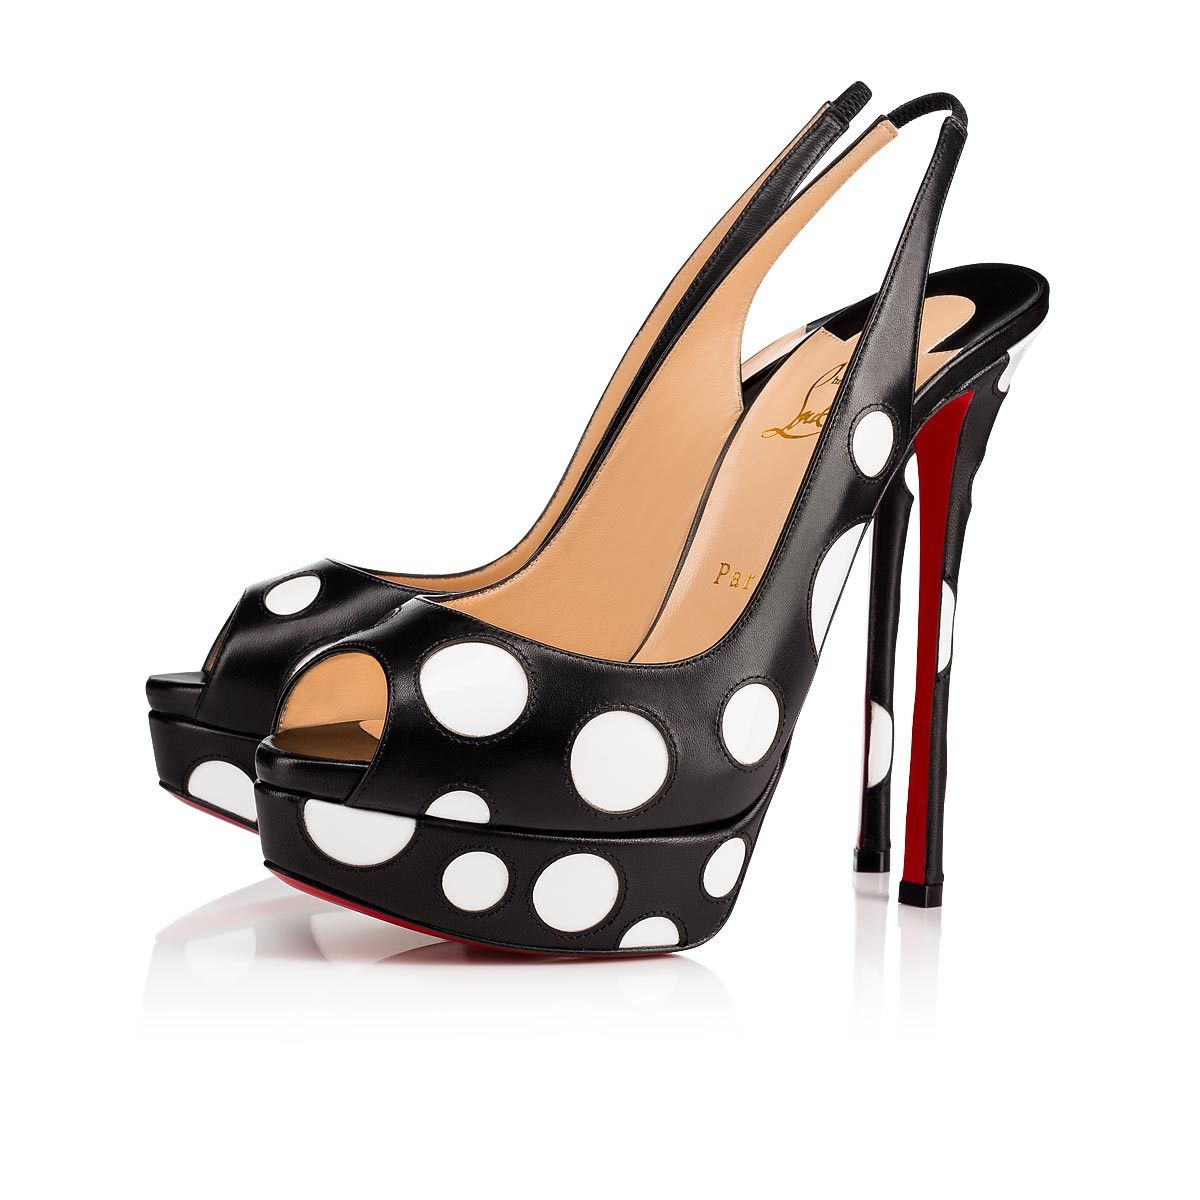 2829ae0d6c1d Christian Louboutin United States Official Online Boutique - Bubble Up 150  Black Latte Leather available online. Discover more Women Shoes by Christian  ...